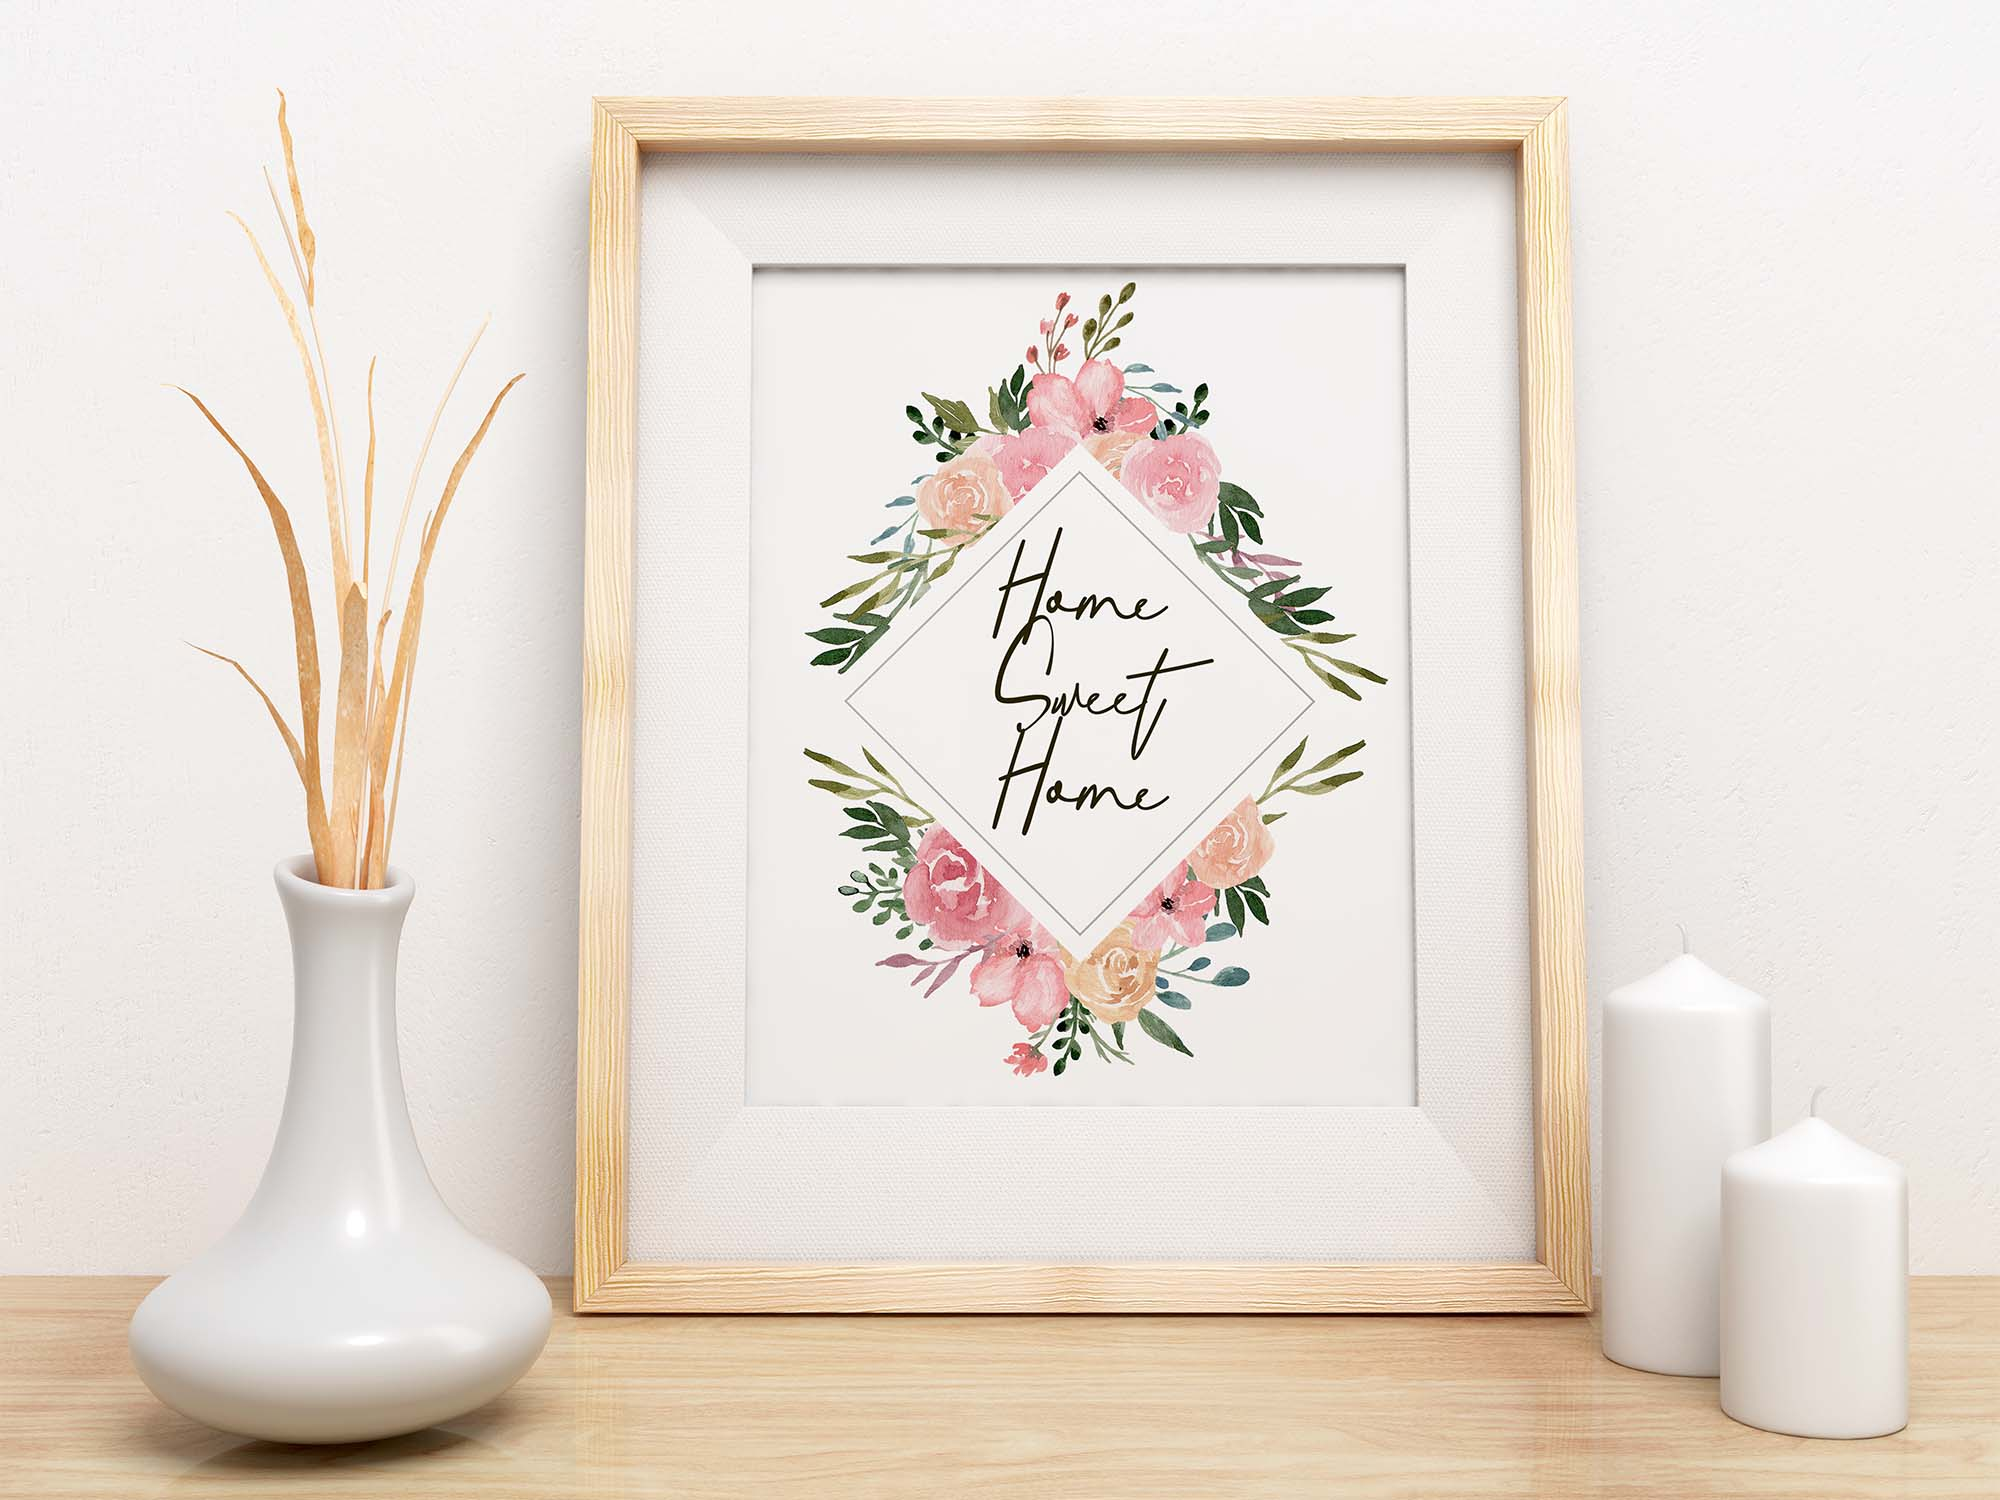 Dusty Blooms Watercolor Graphic Illustrations 7